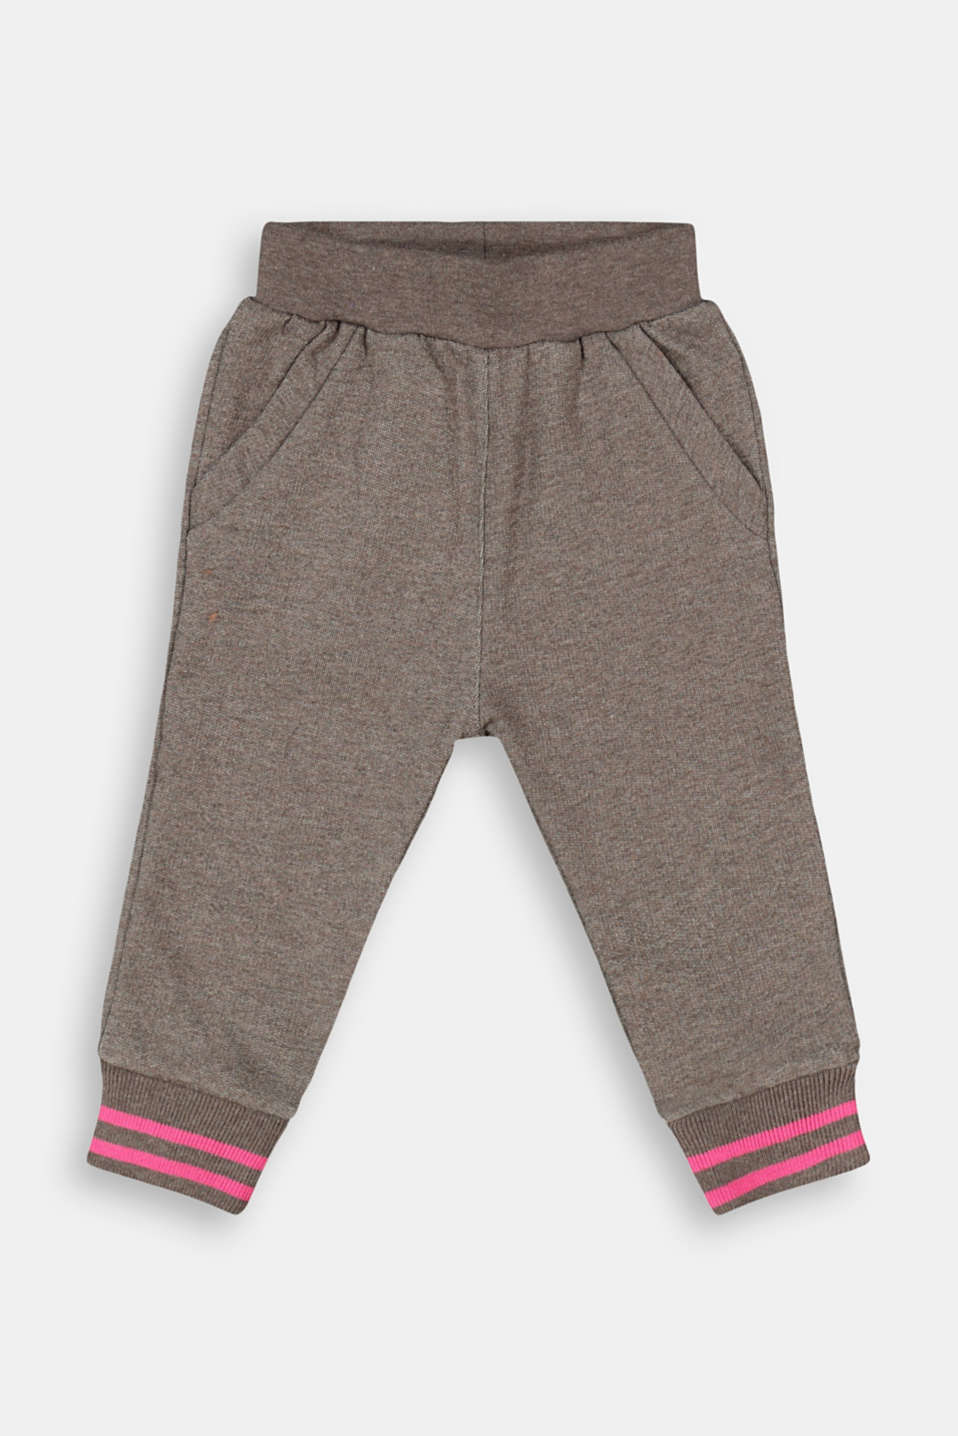 Esprit - Melange tracksuit bottoms made of 100% organic cotton